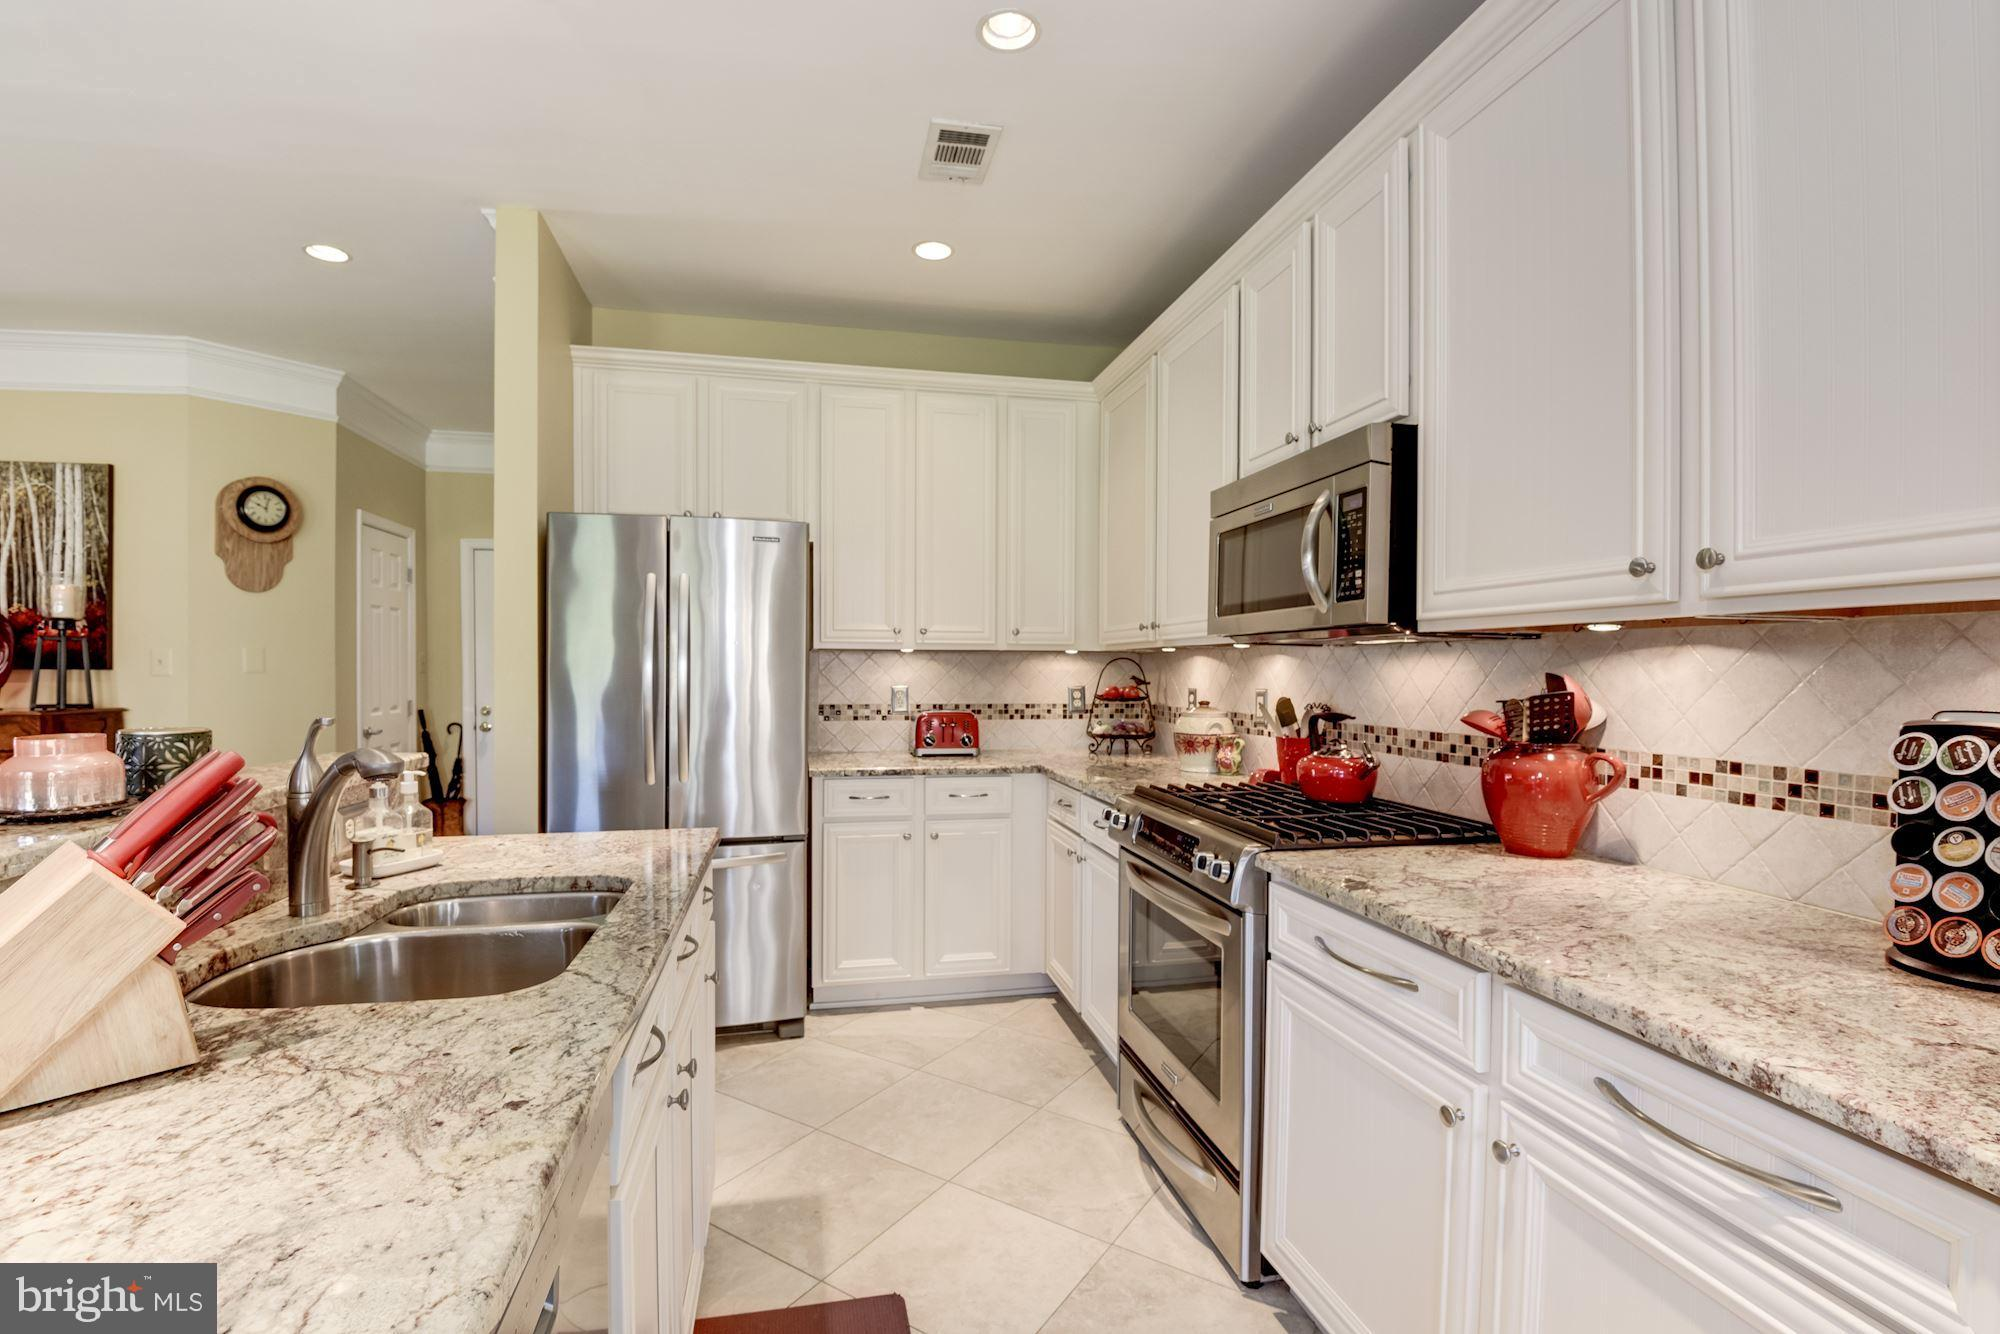 $40K+ in upgrades-nothing like it ever before on the market! Water view from every rm! Beautifully renovated w/ open floor plan, gourmet kitchen, ss appl, exotic granite, porcelain wood-grain tile, updated baths, cust closets, gas fpl. New HVAC (2017). En suite master w/ walk-in closet & safe.  Amenities incl pool, club house, fitness & more! Amazing location - walk to tons of shops & restaurants.